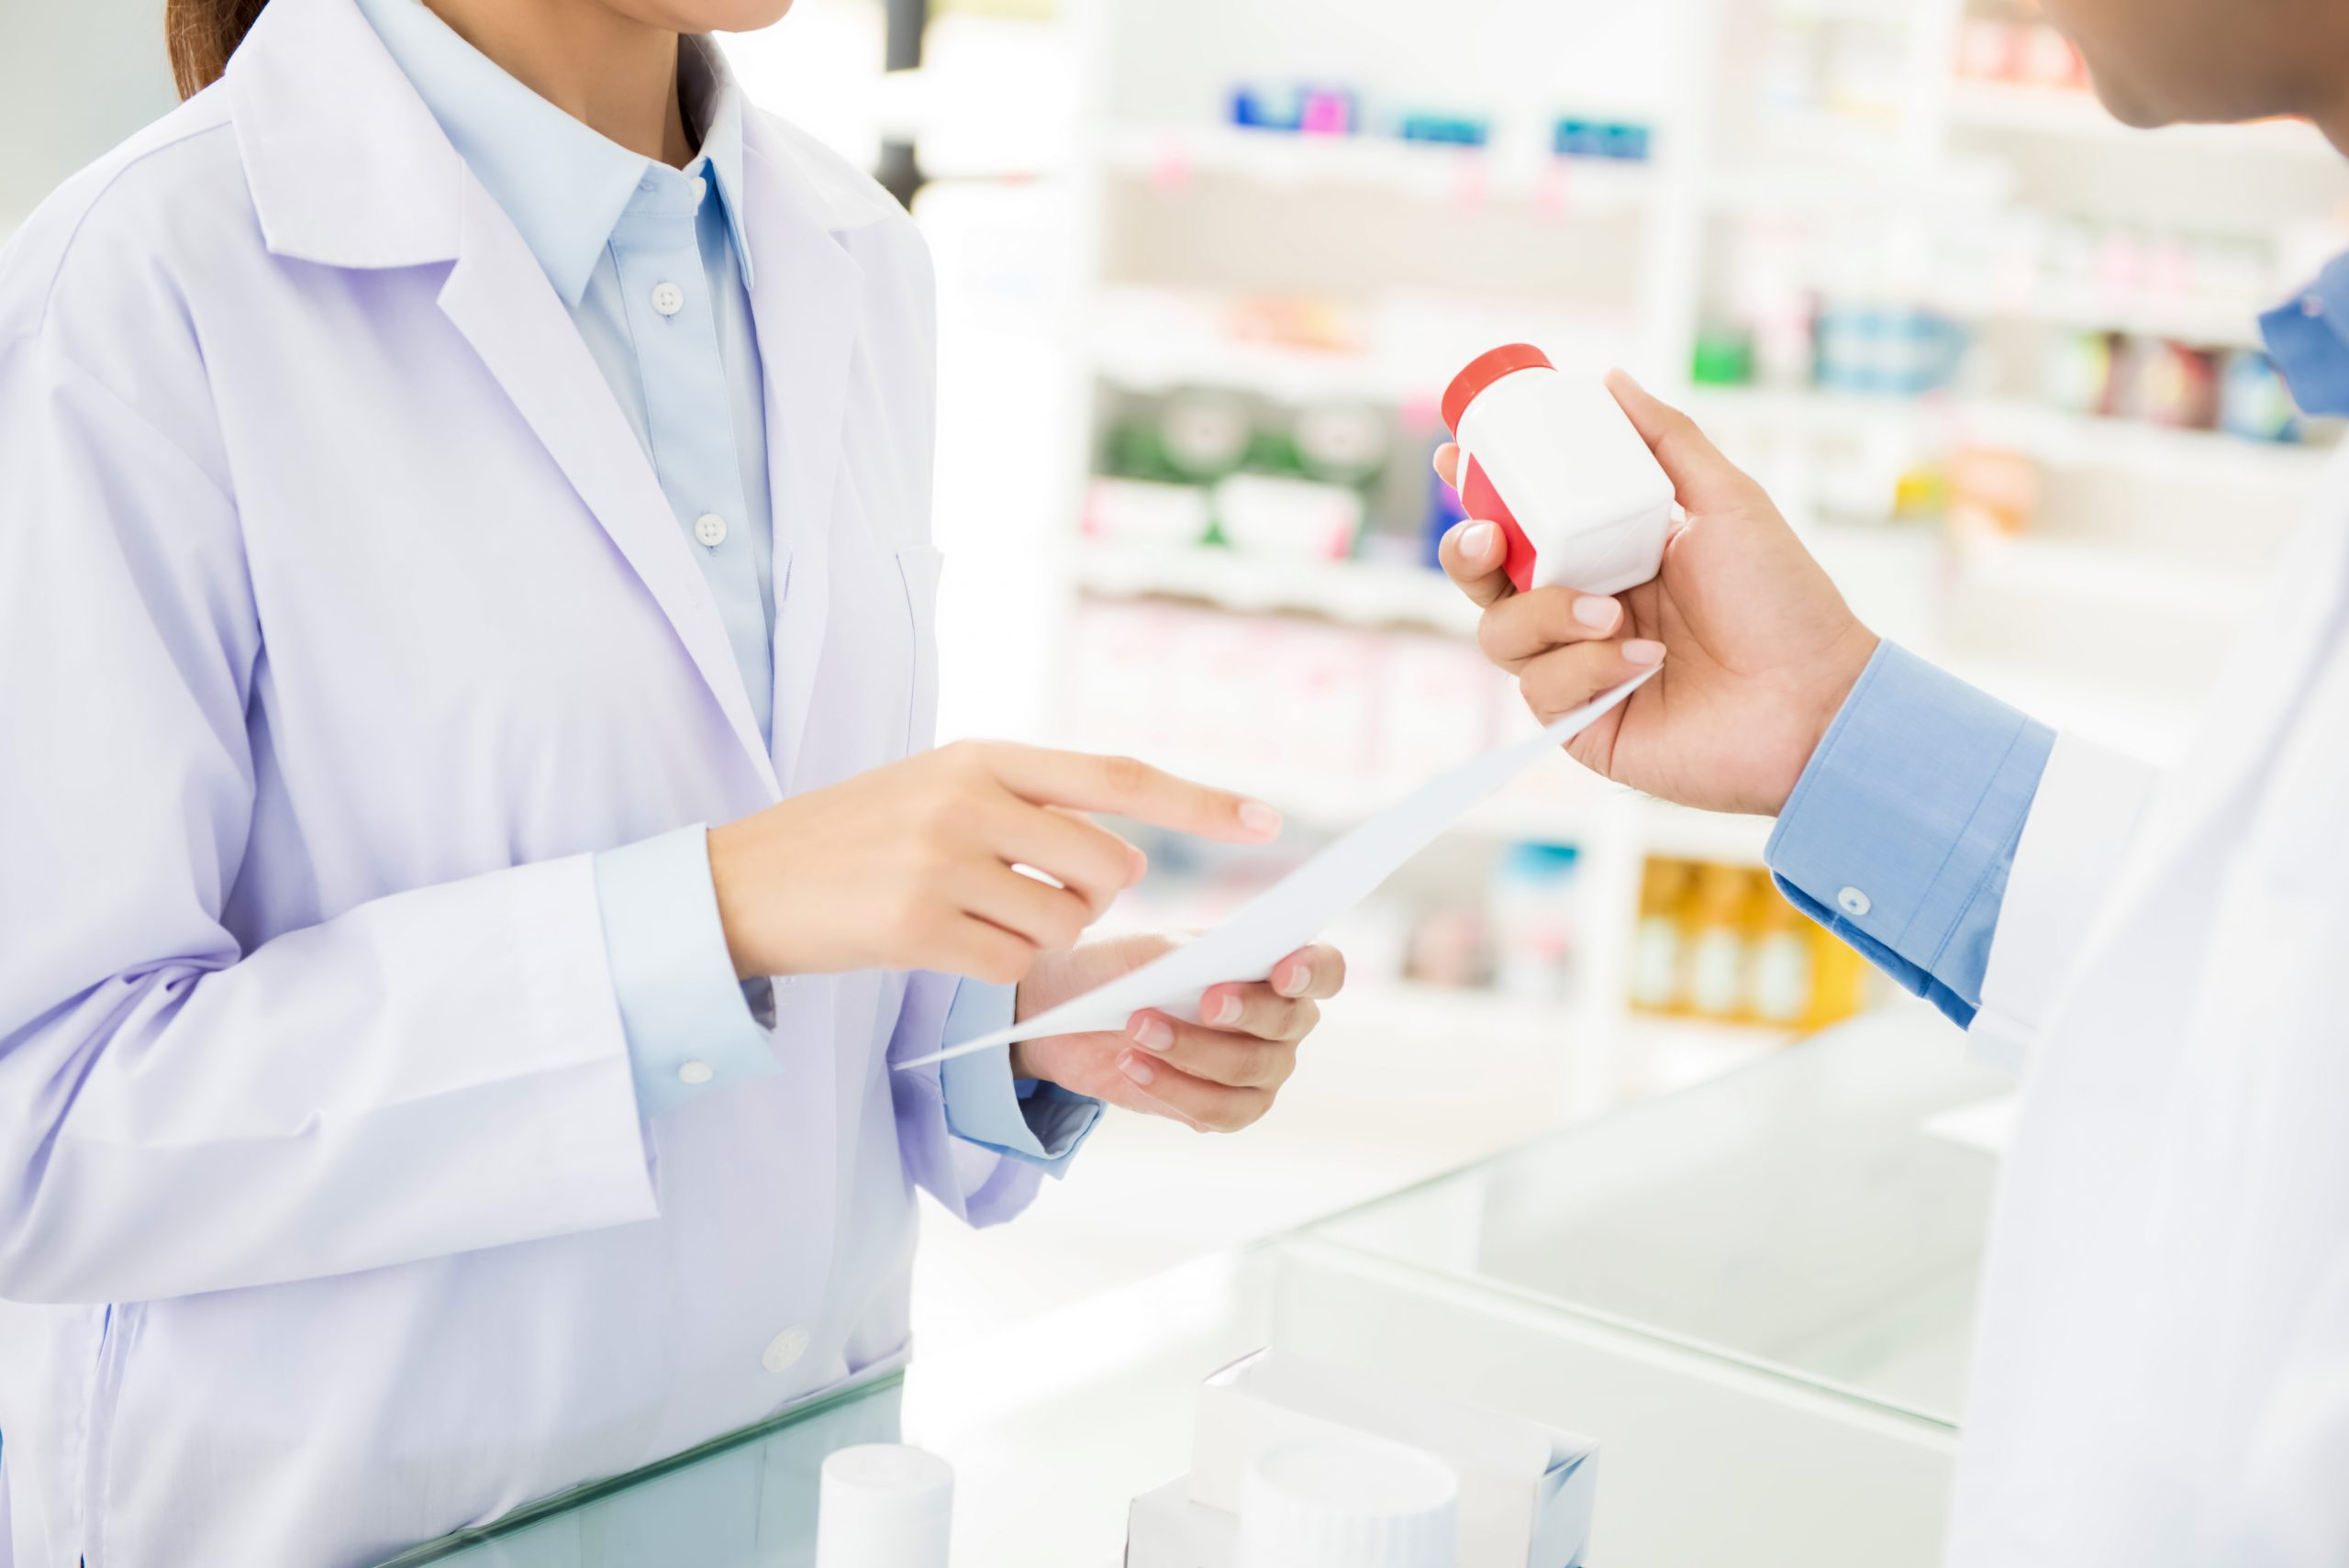 Pharmacists holding medicine bottle and discussing prescription drug in a pharmacy or drugstore